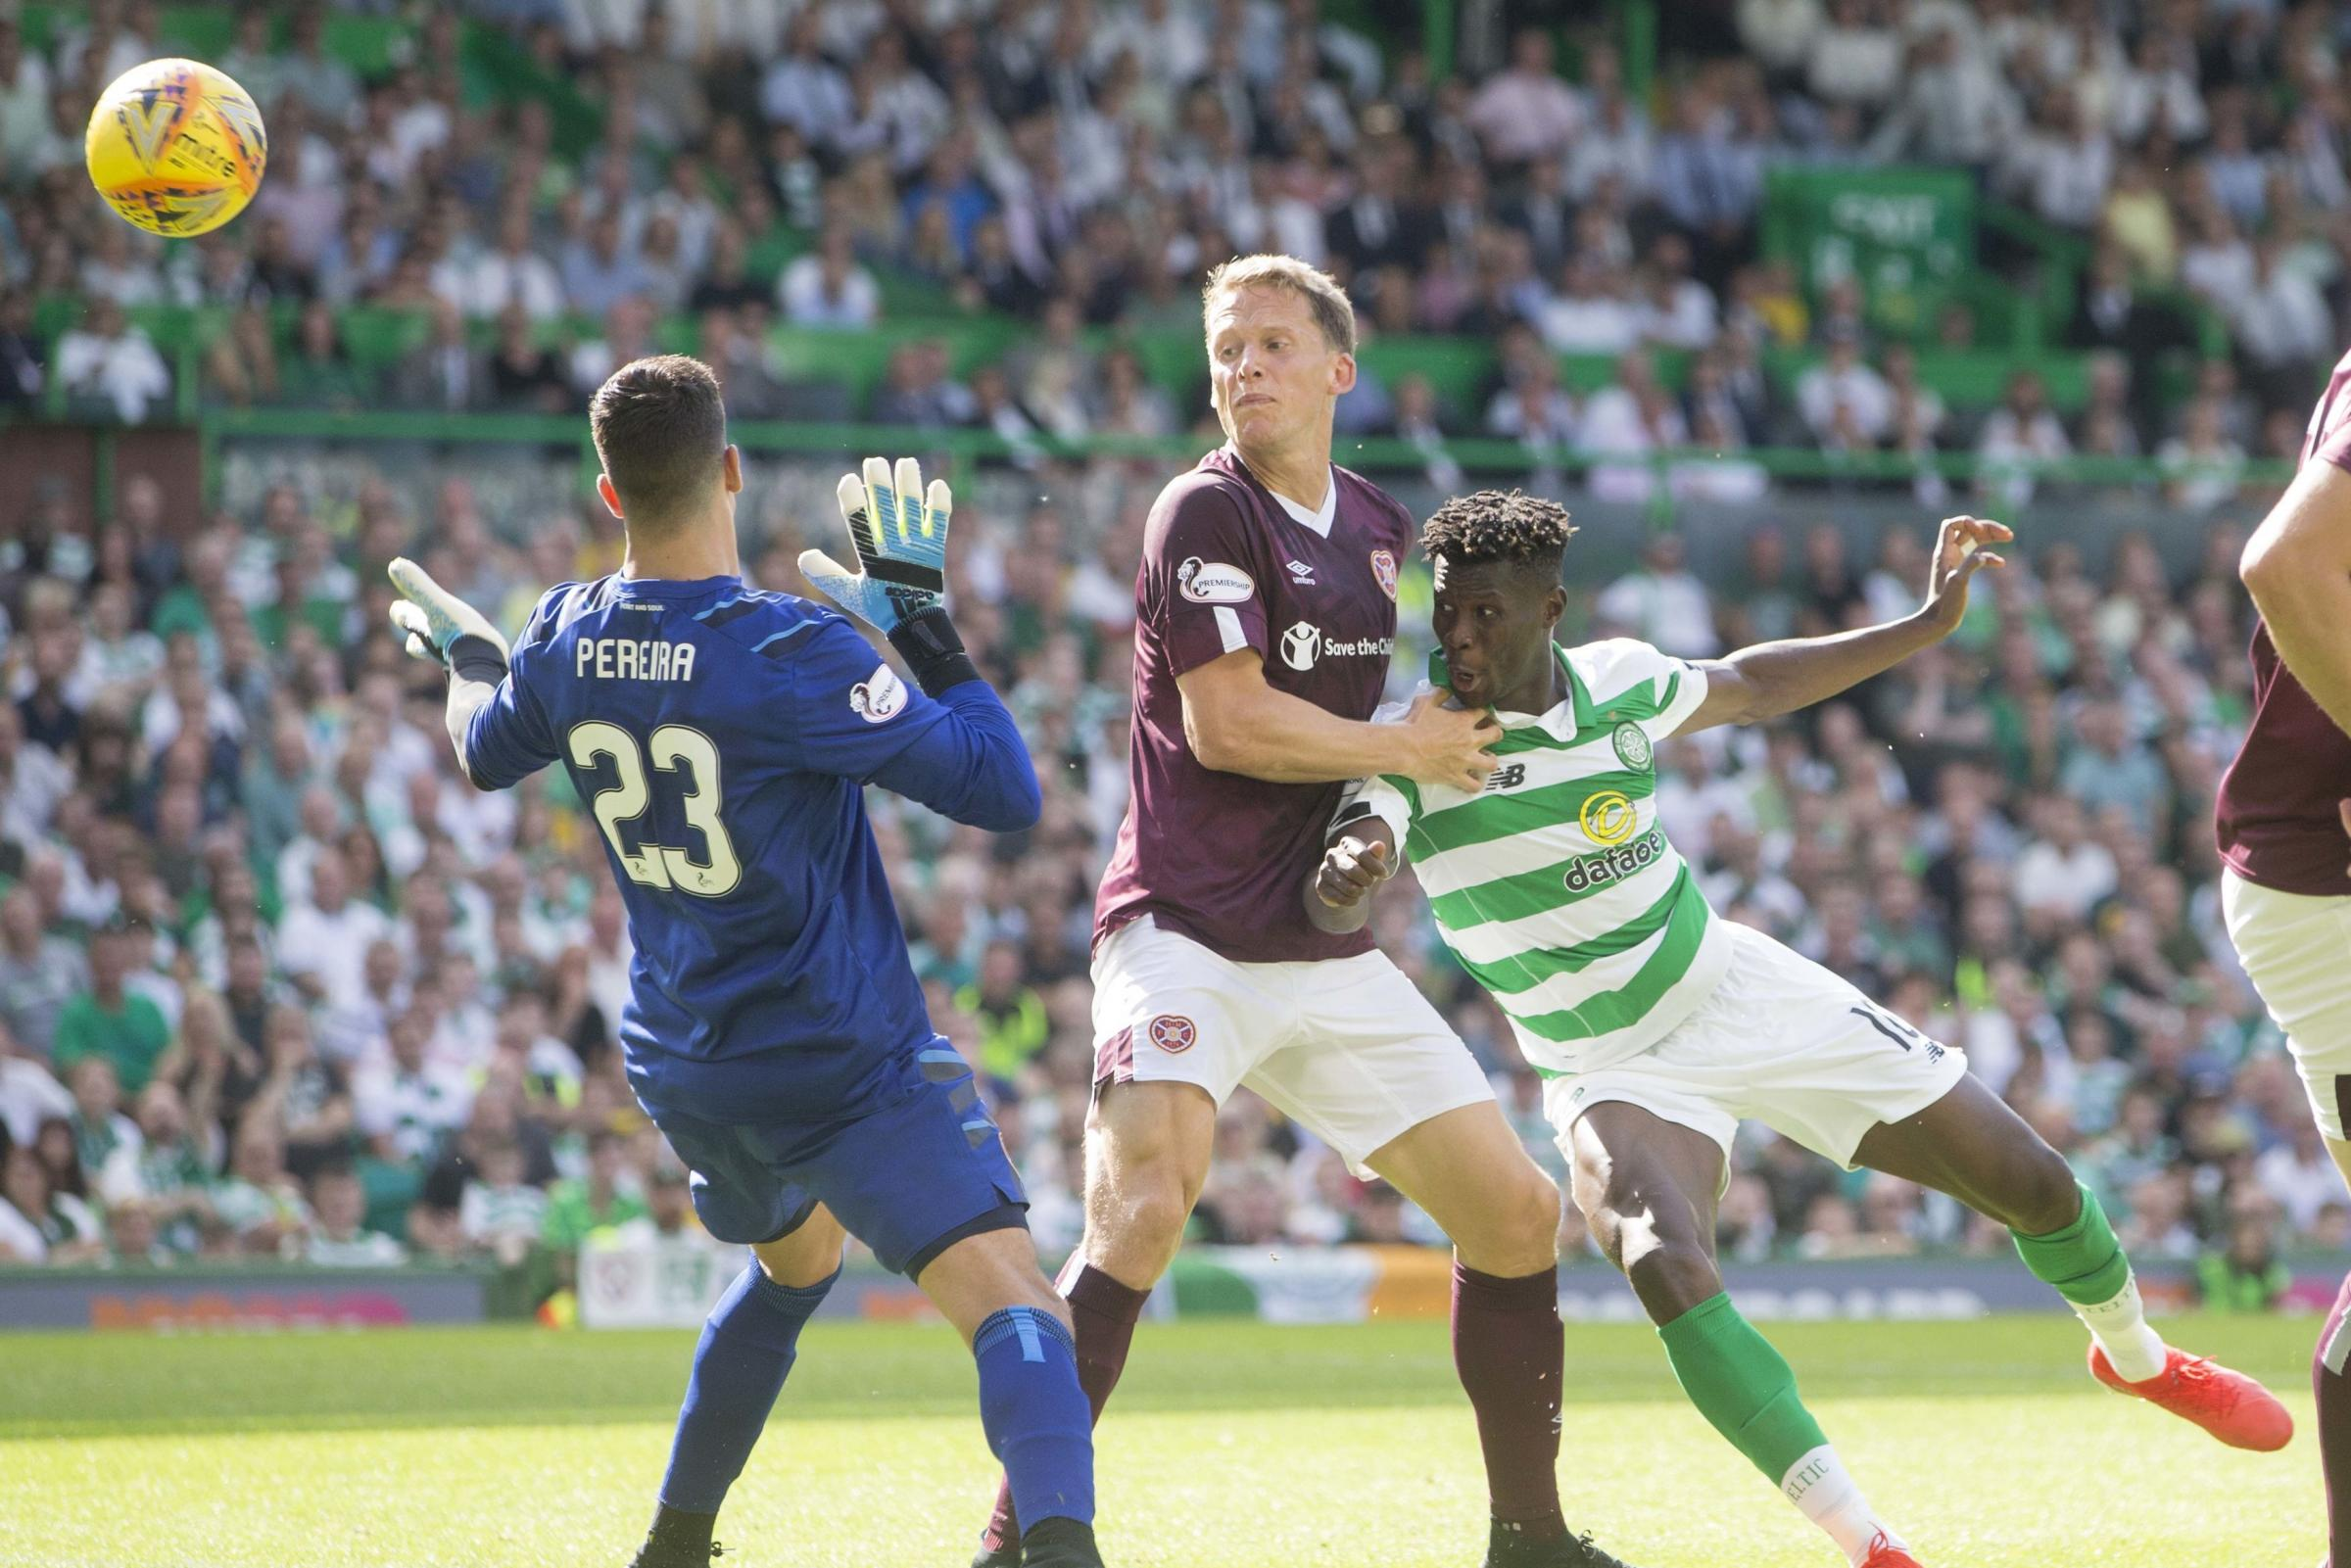 Celtic 3 Hearts 1: Five talking points as champions cruise past visitors